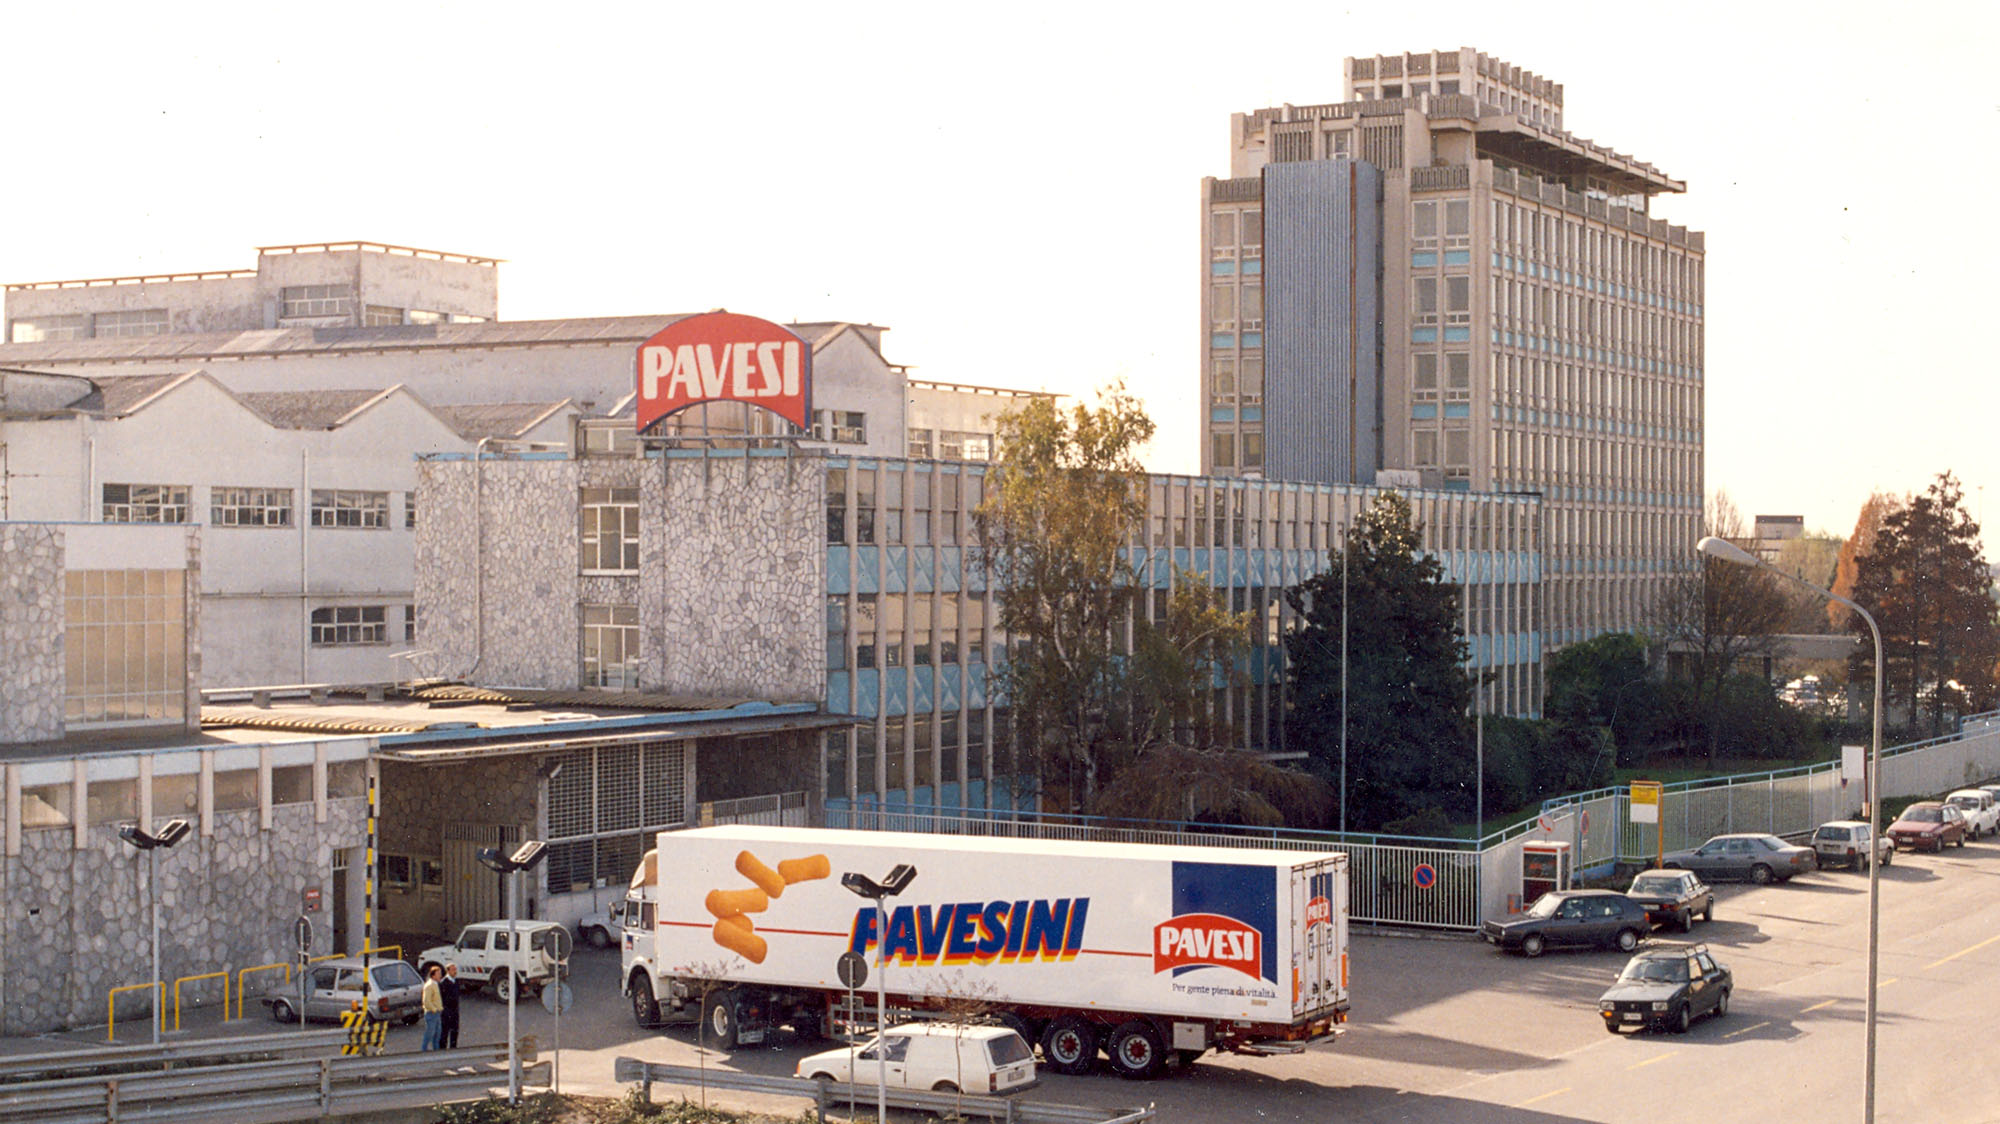 1993 - Full acquisition of Pavesi